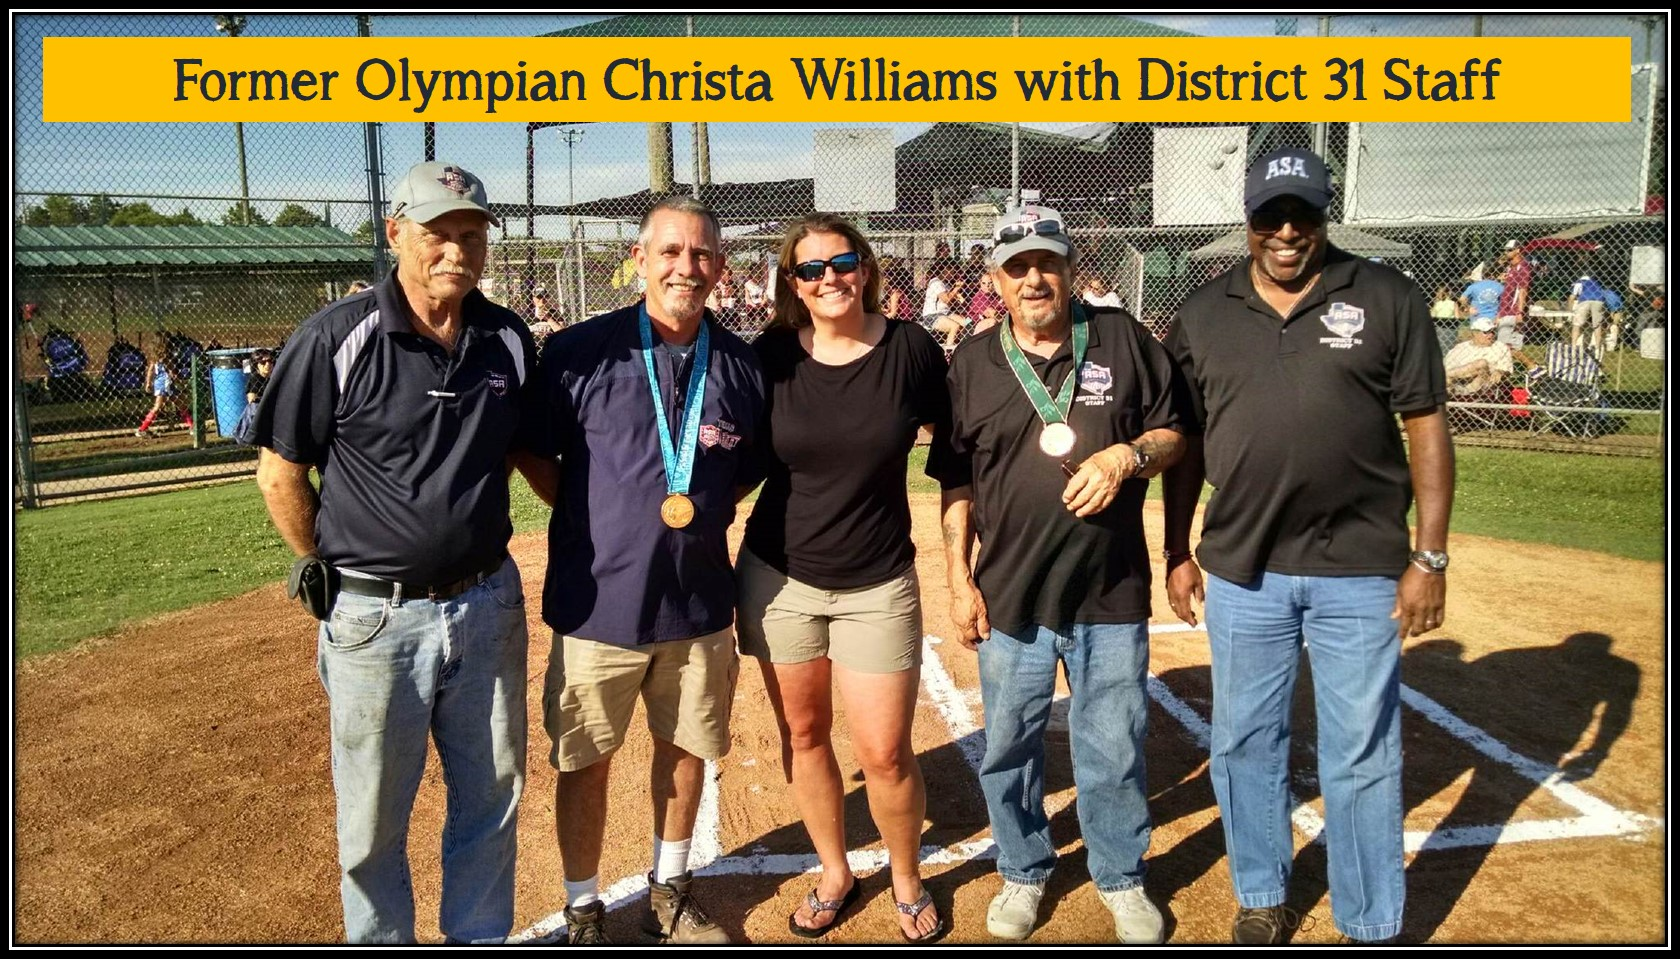 DistrictStaff_w-ChristaWilliams